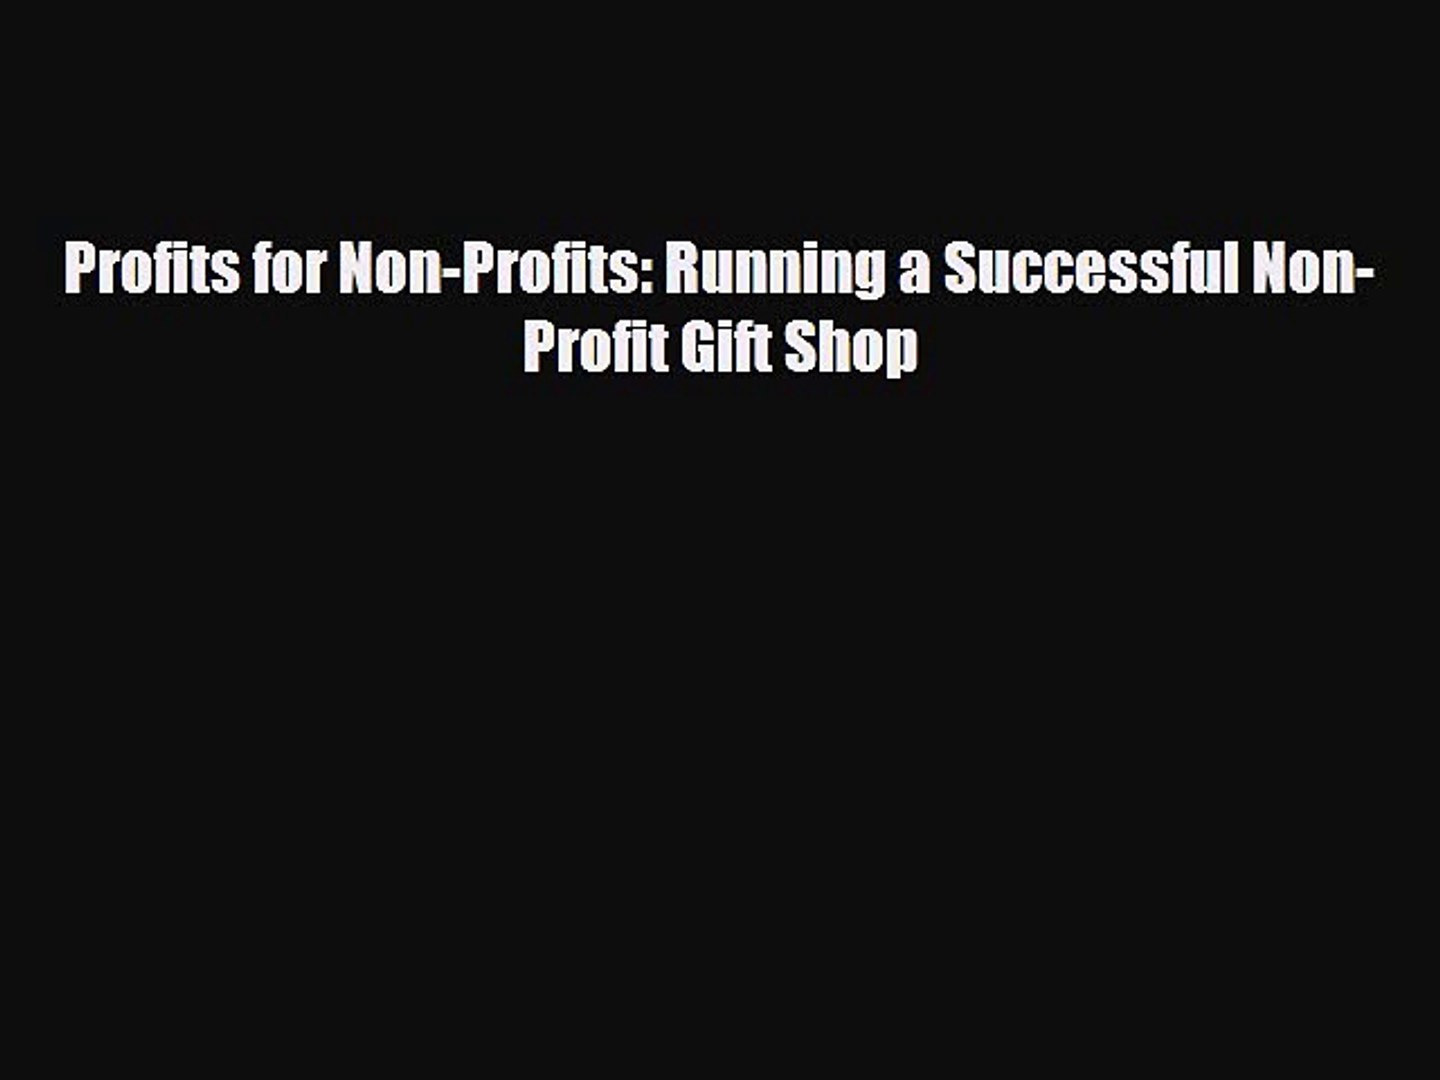 there is Profits for Non-Profits: Running a Successful Non-Profit Gift Shop